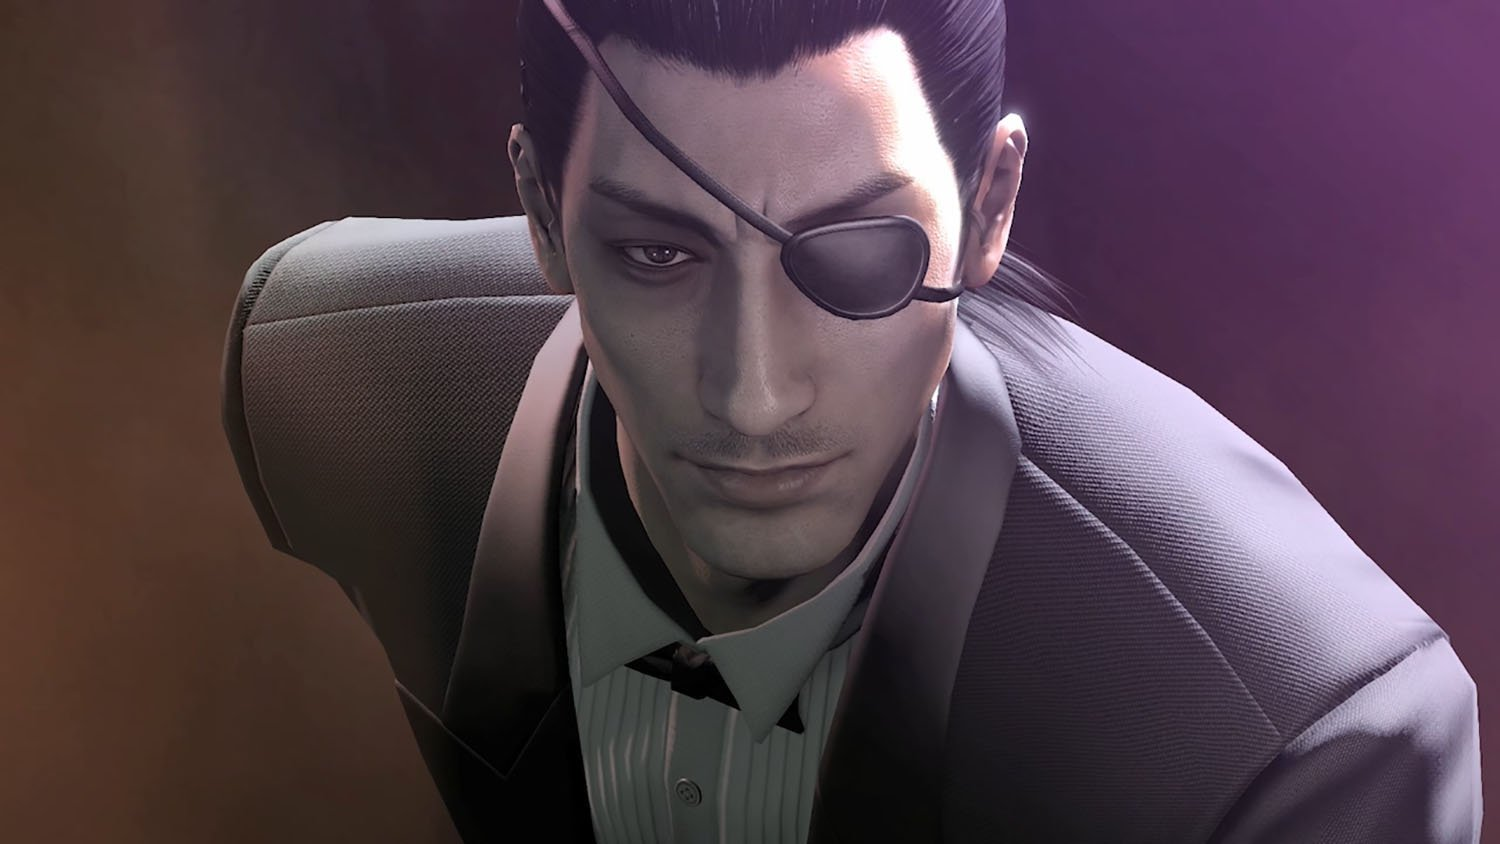 Yakuza's Producer Discusses Possibility Of A Majima Spin-Off https://t.co/DoLk322RbS https://t.co/XOOQXgagGH